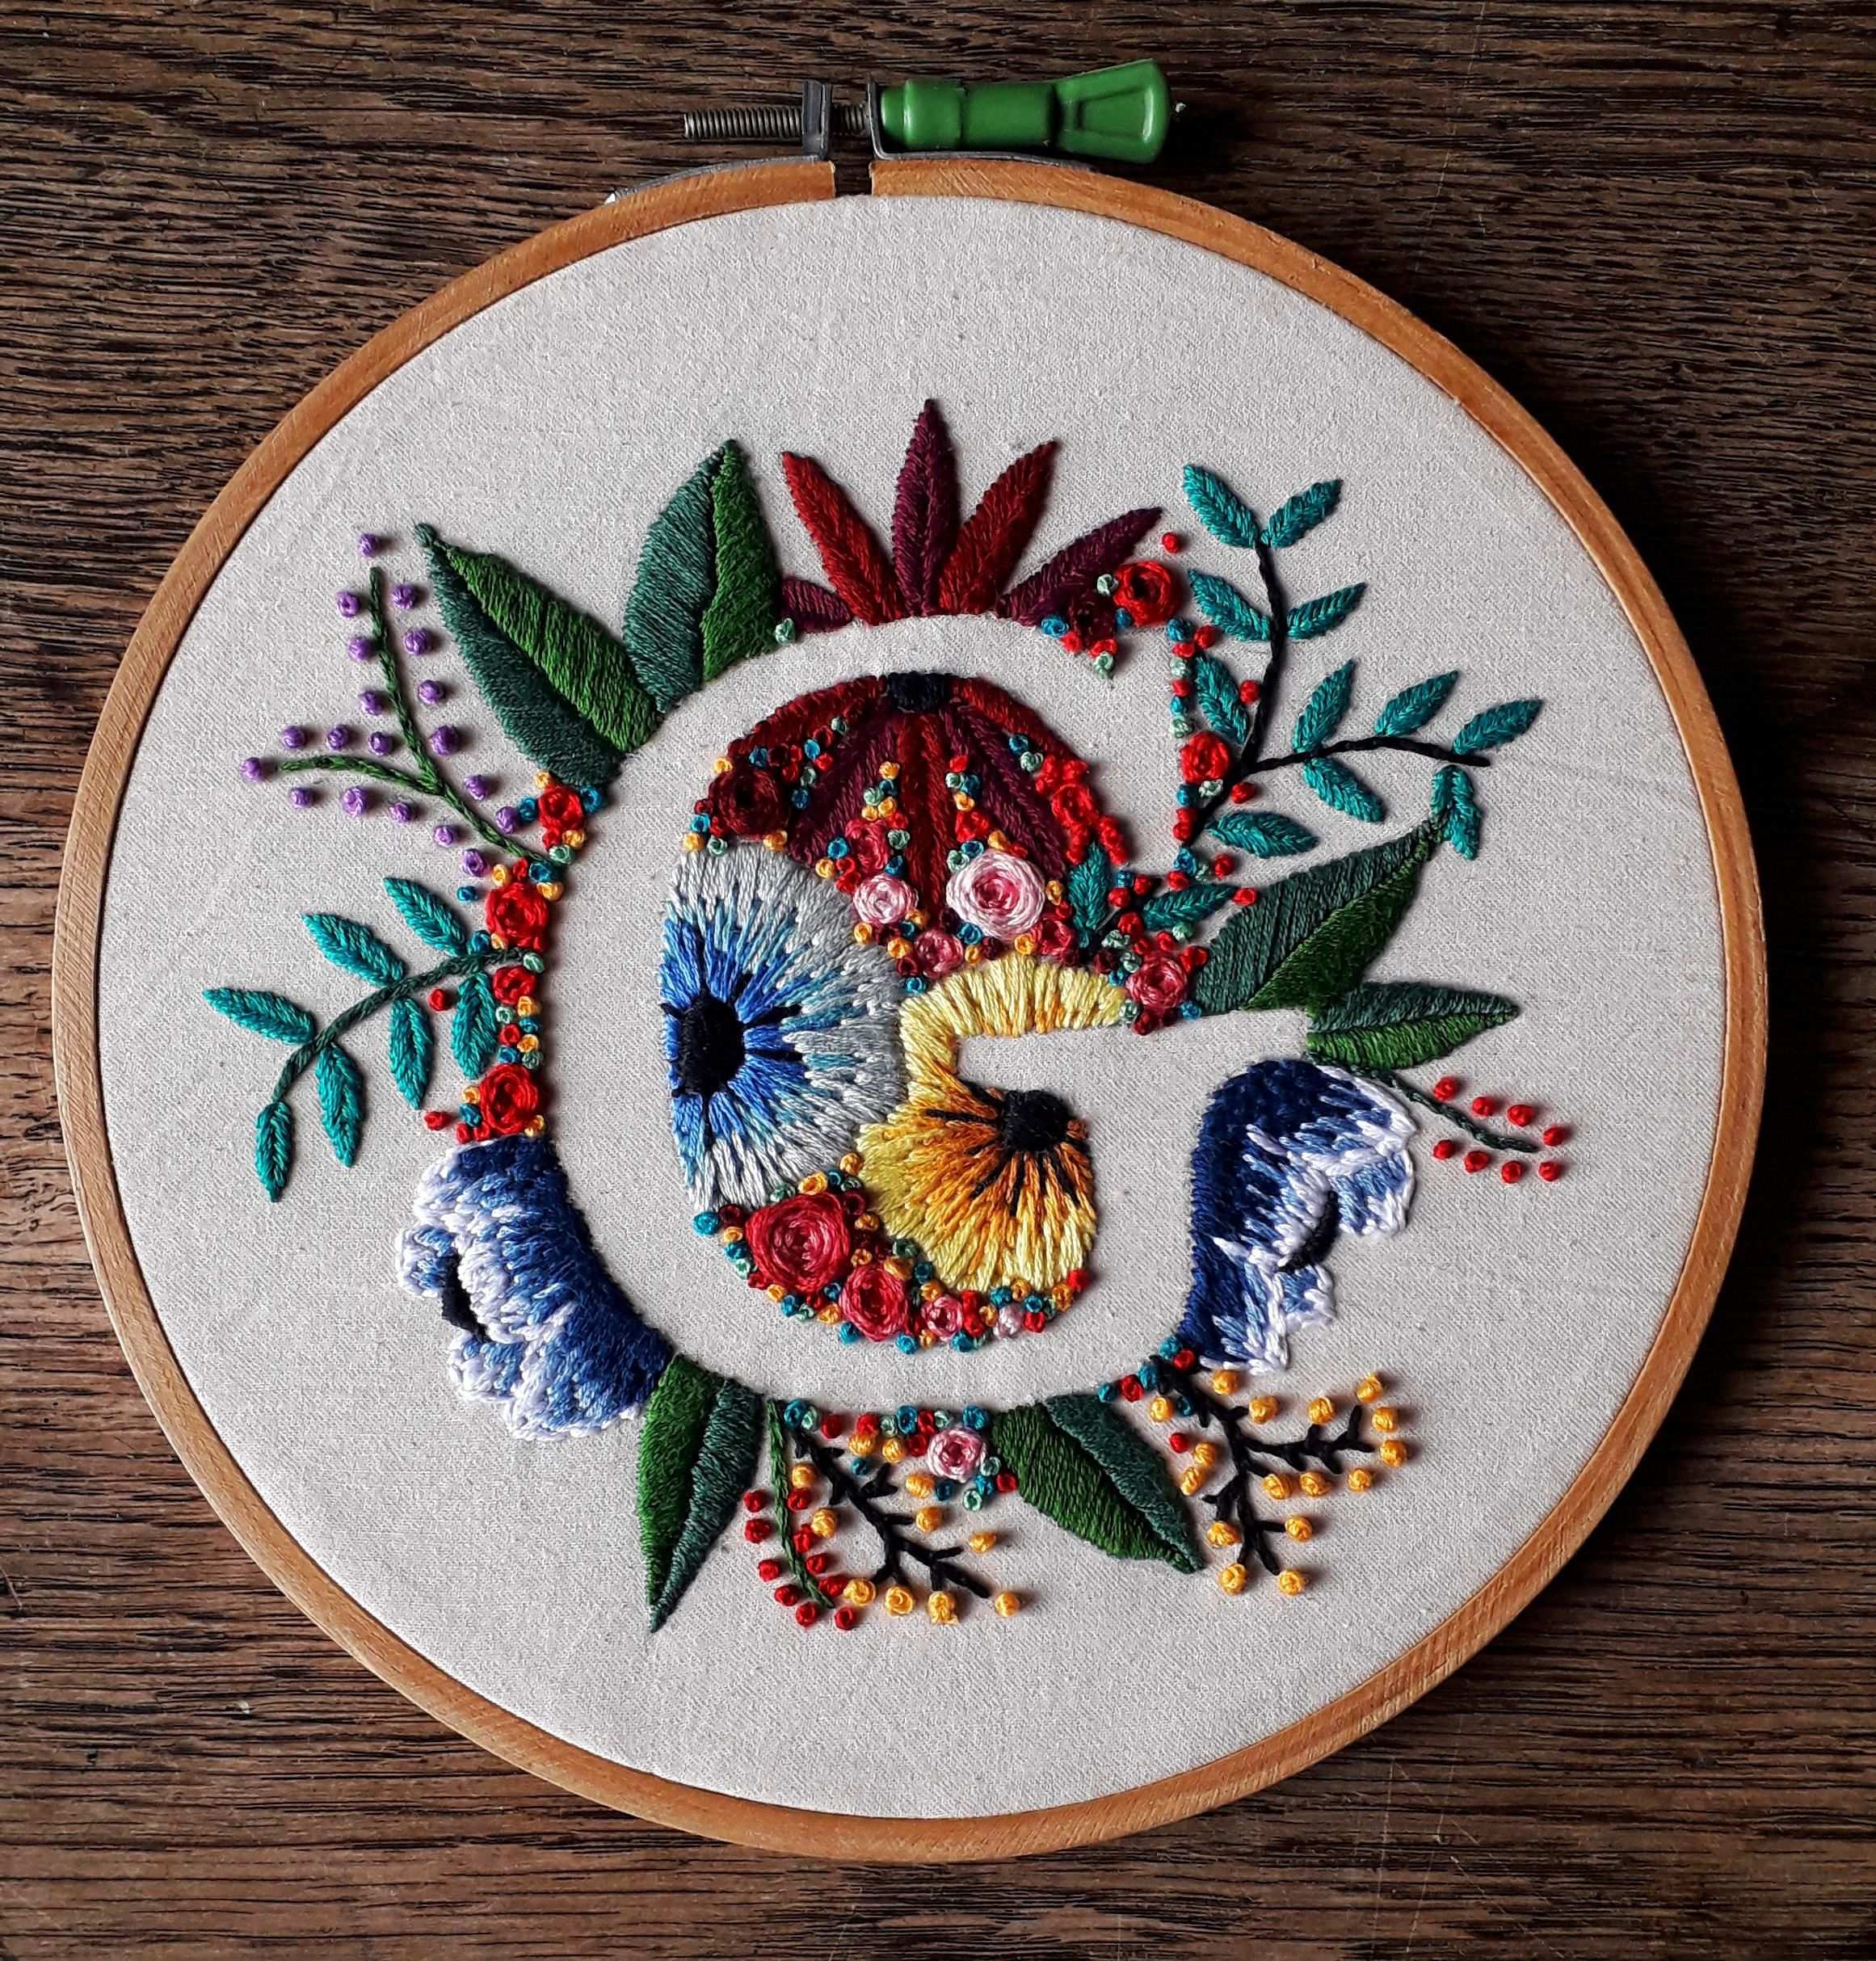 Hand embroidered, as a baby's gift :)